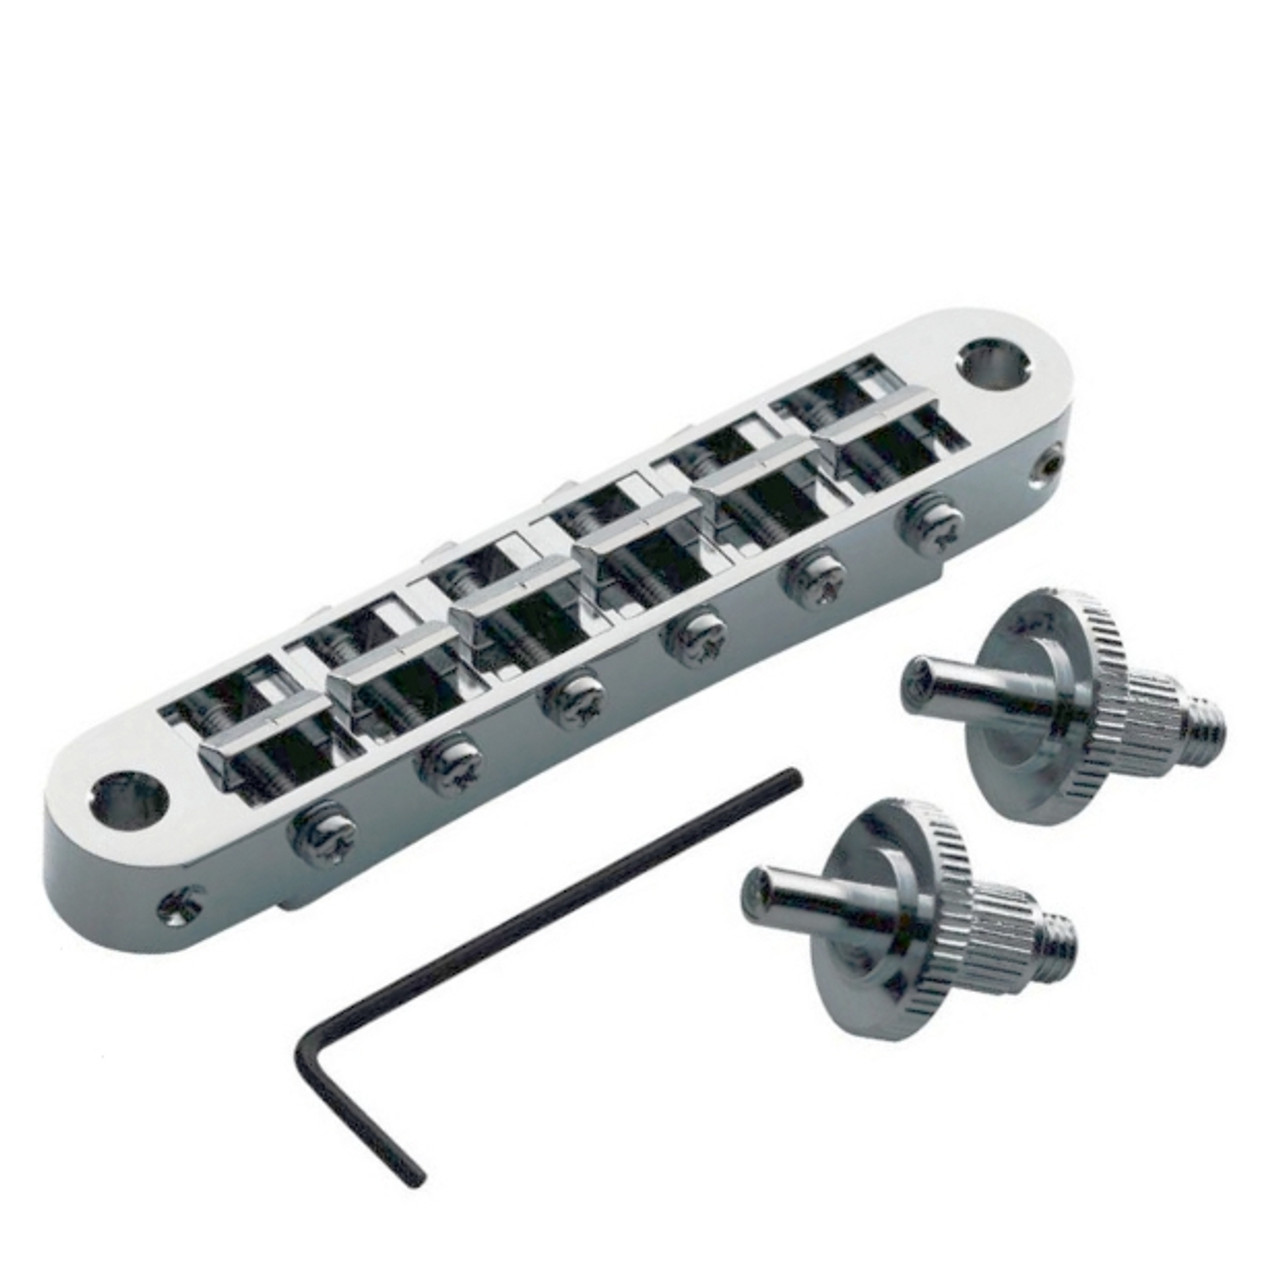 TonePros Nashville Tunematic Locking Bridge-Chrome